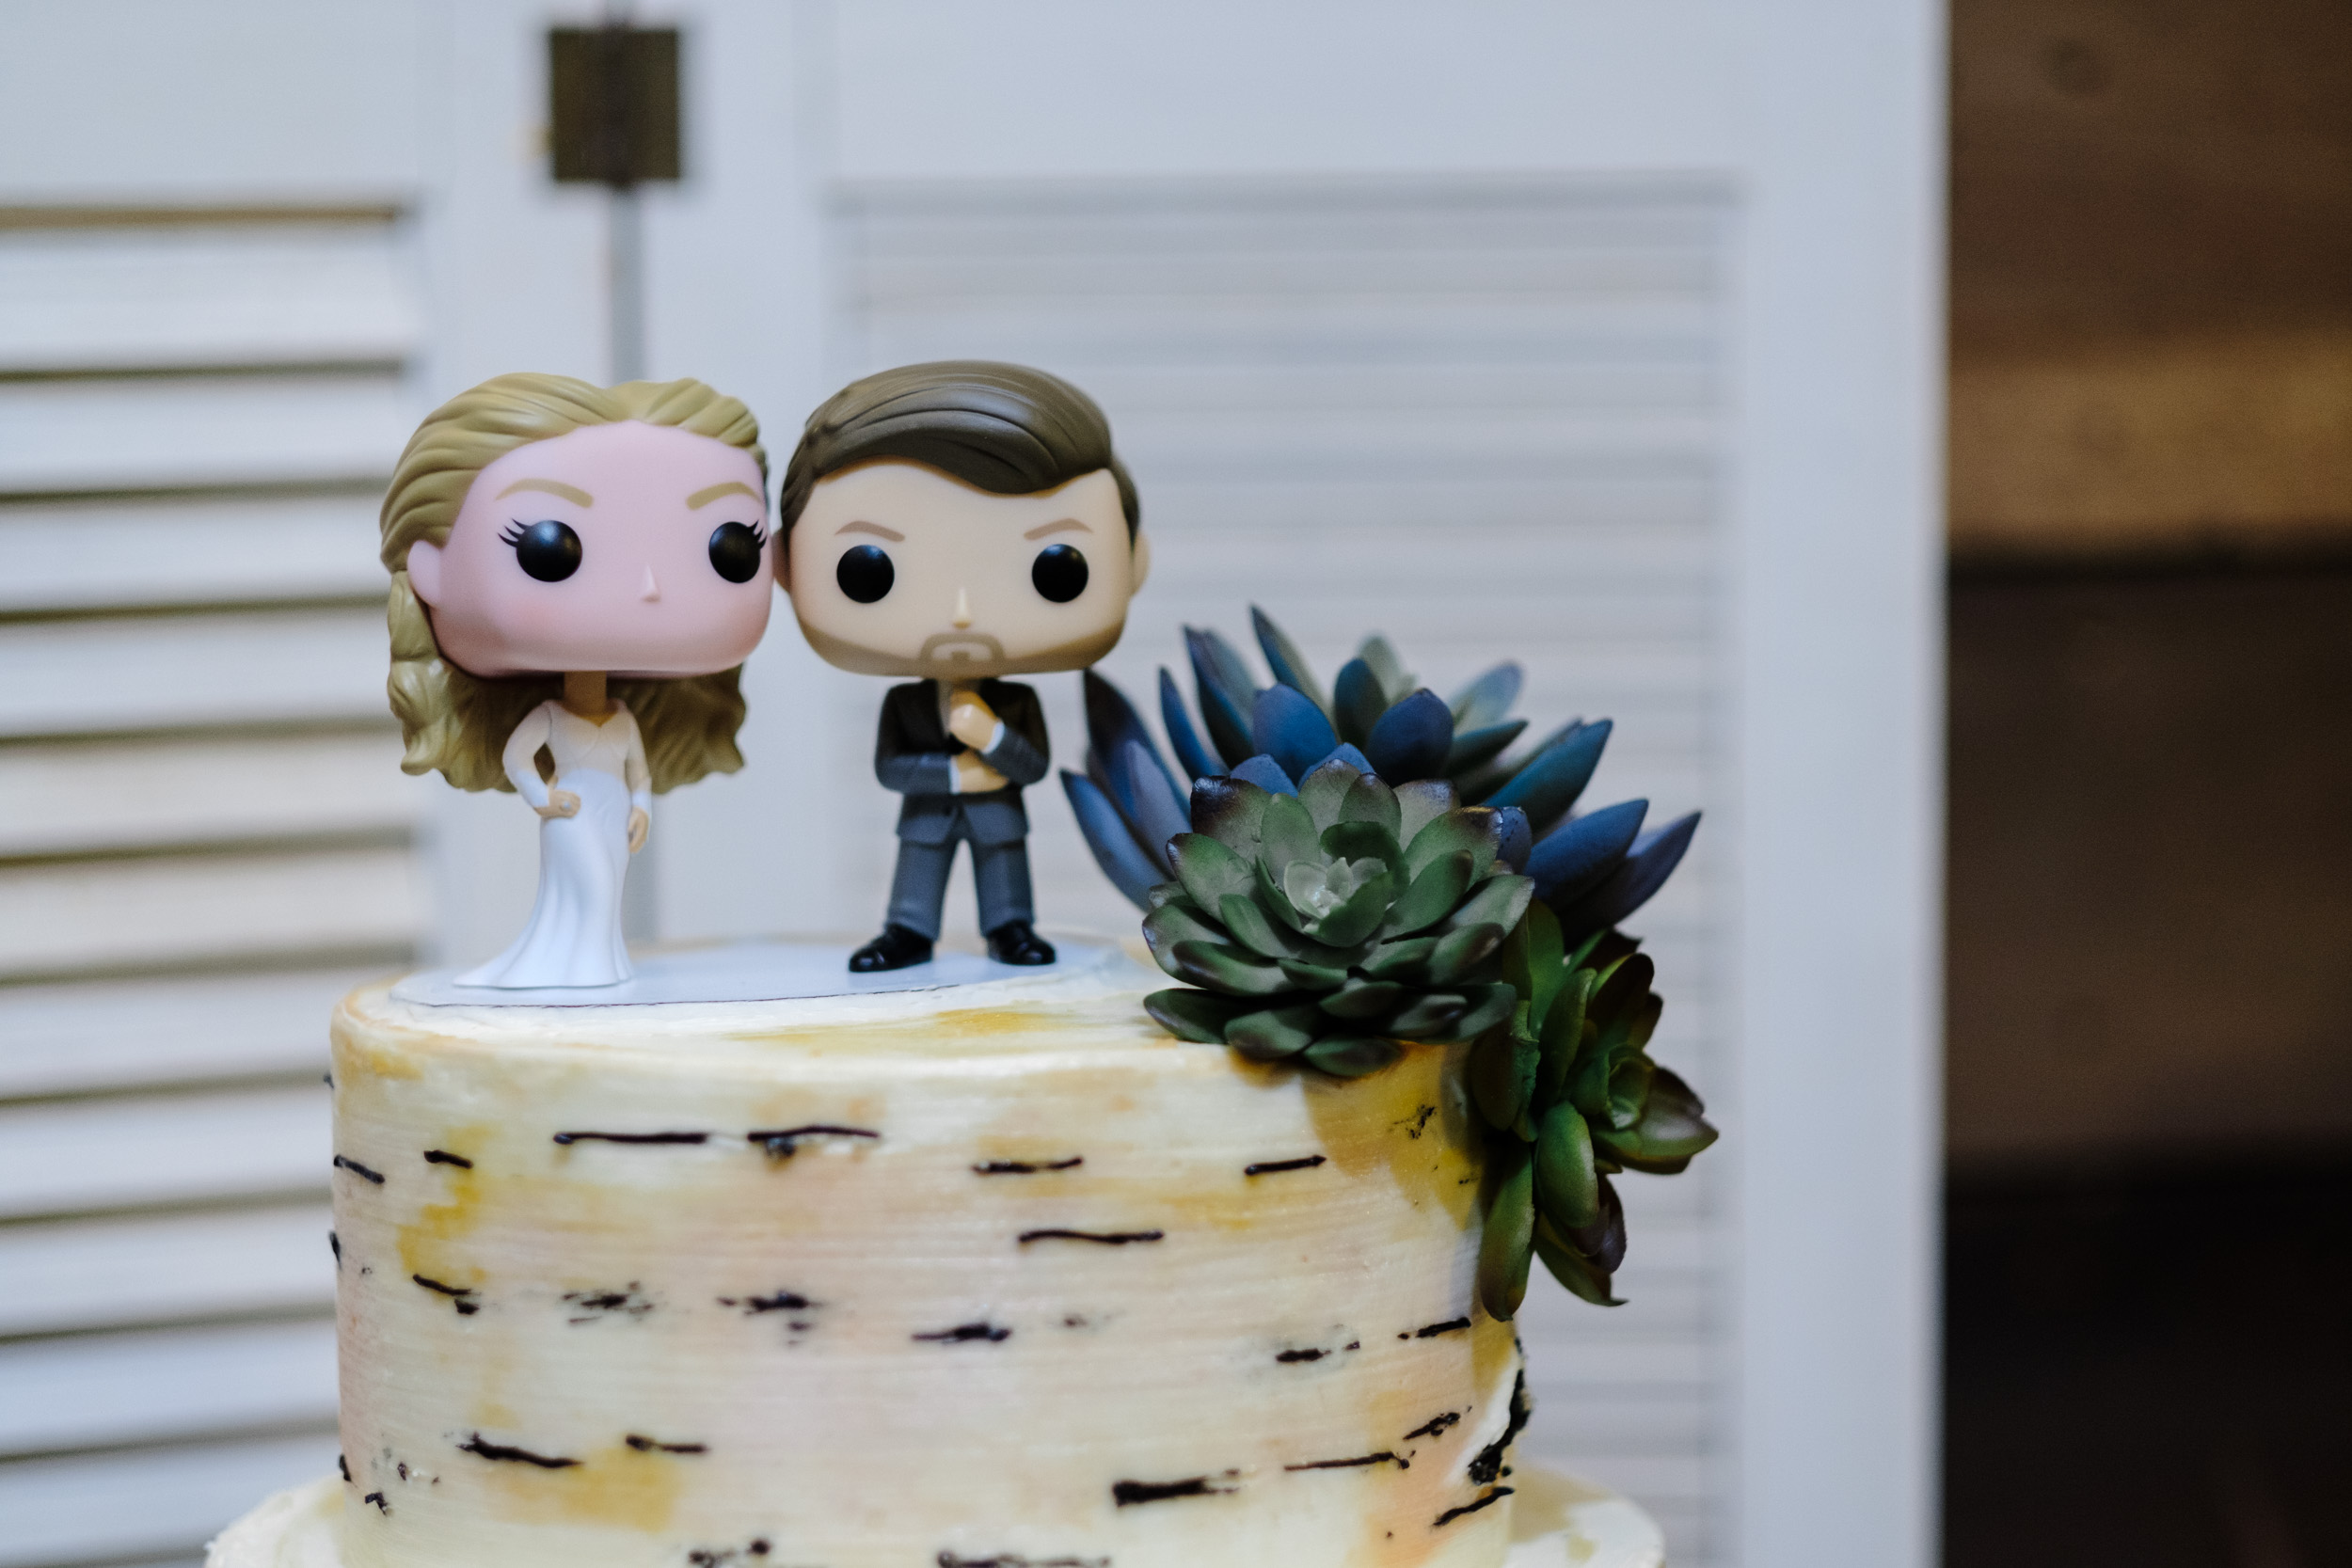 funko pop cake topper bride and groom